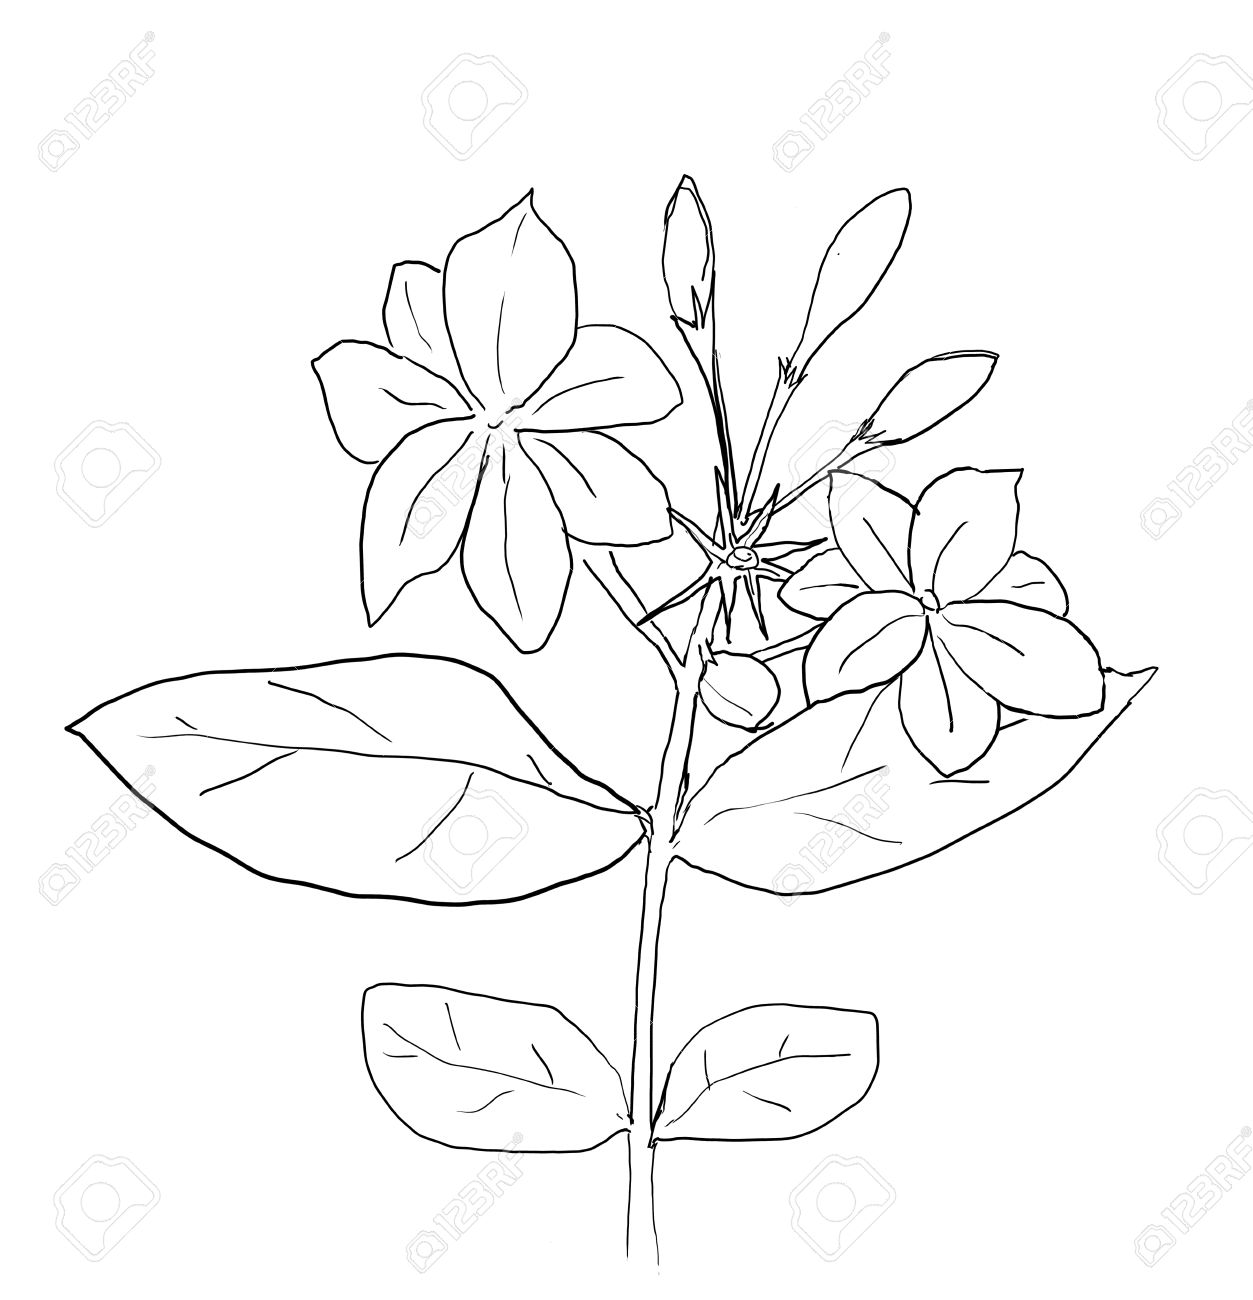 Jasmine drawing at getdrawings free for personal use jasmine 1253x1300 arabian jasmine flower drawing line art stock photo picture and izmirmasajfo